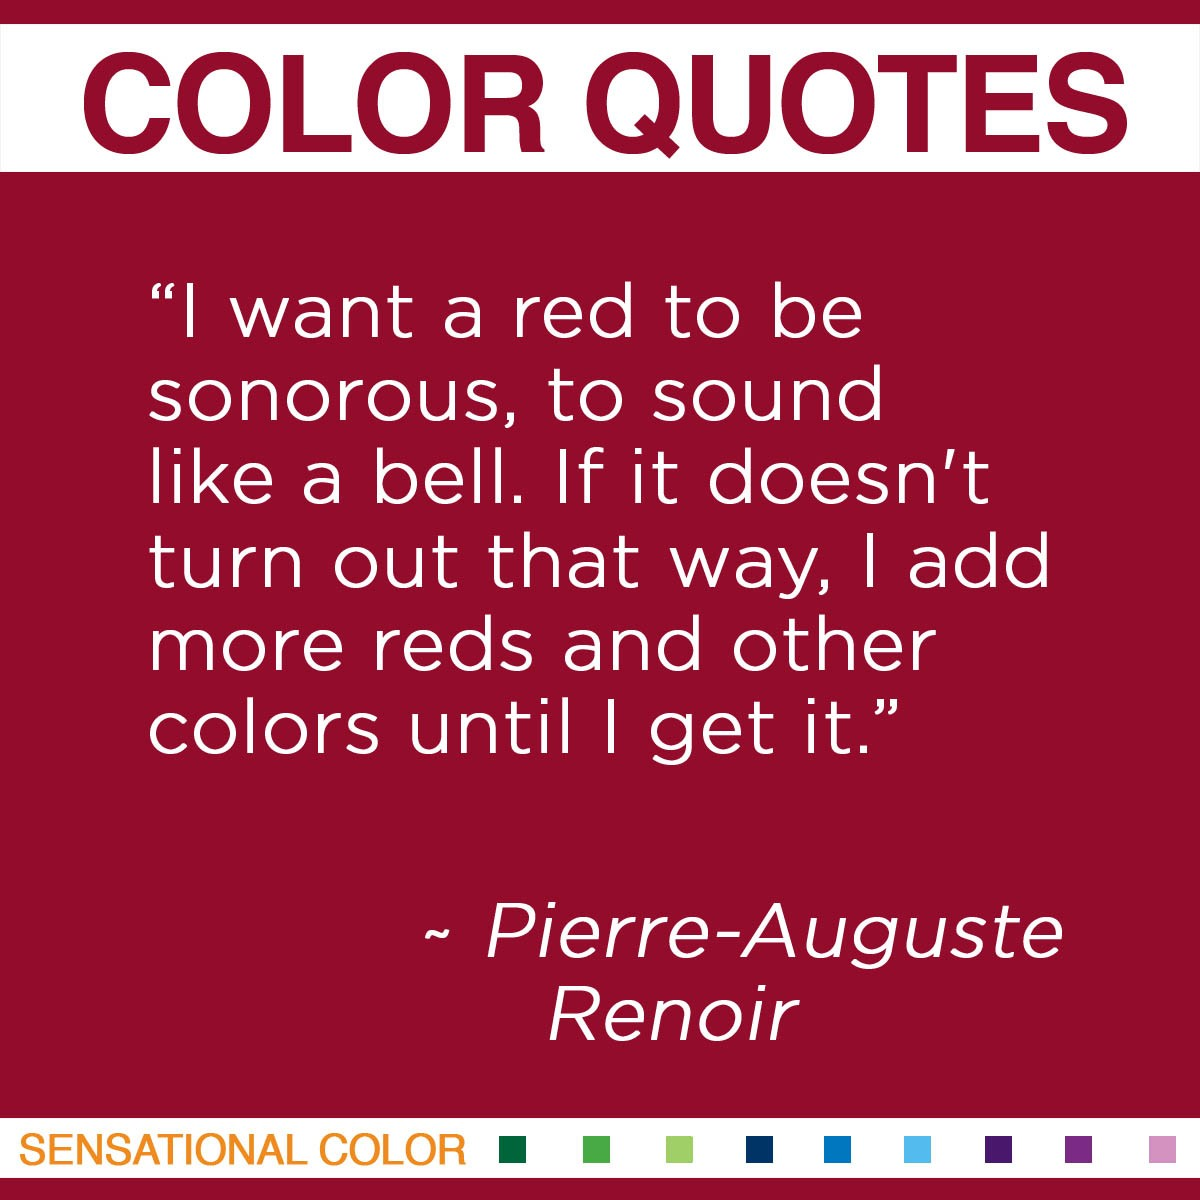 """I want a red to be sonorous, to sound like a bell. If it doesn't turn out that way, I add more reds and other colors until I get it."" - Pierre-Auguste Renoir"